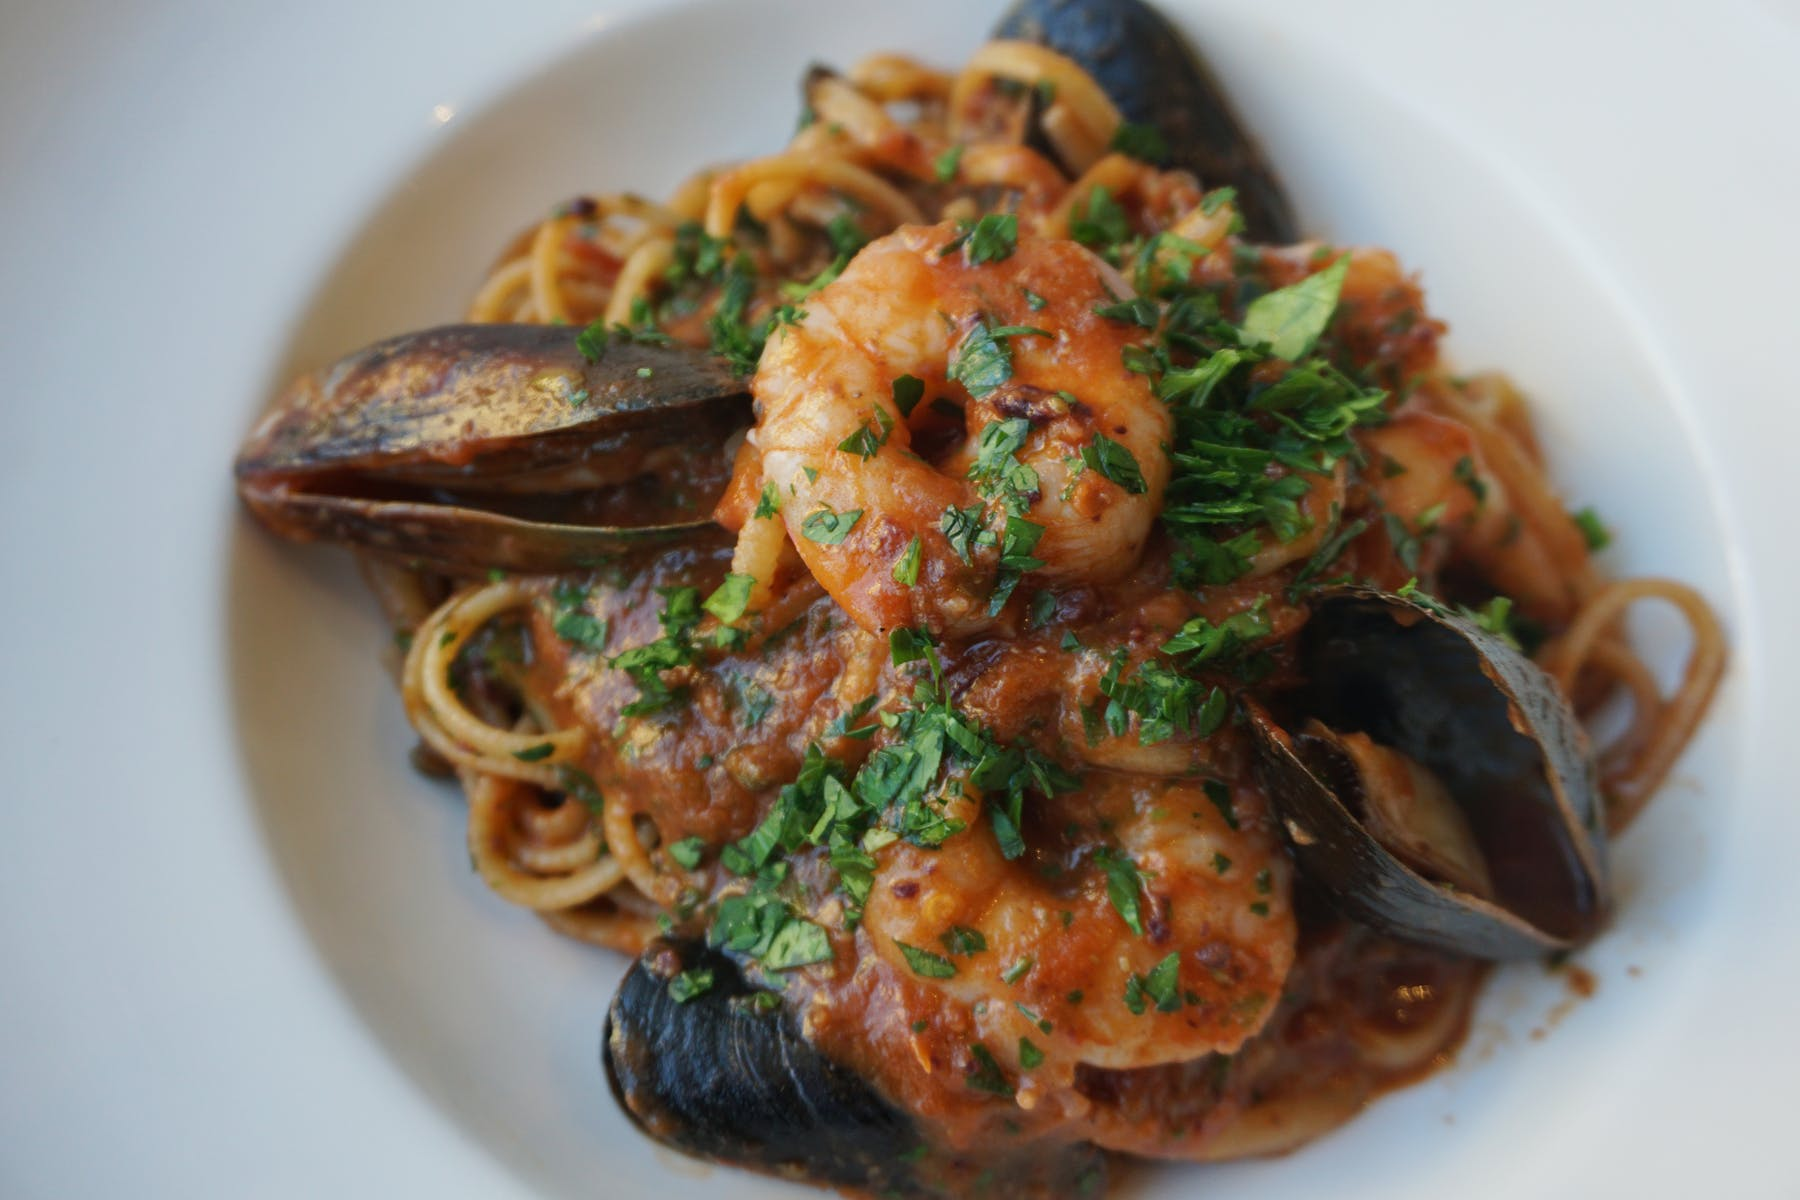 Pasta with mussels and shrimps.